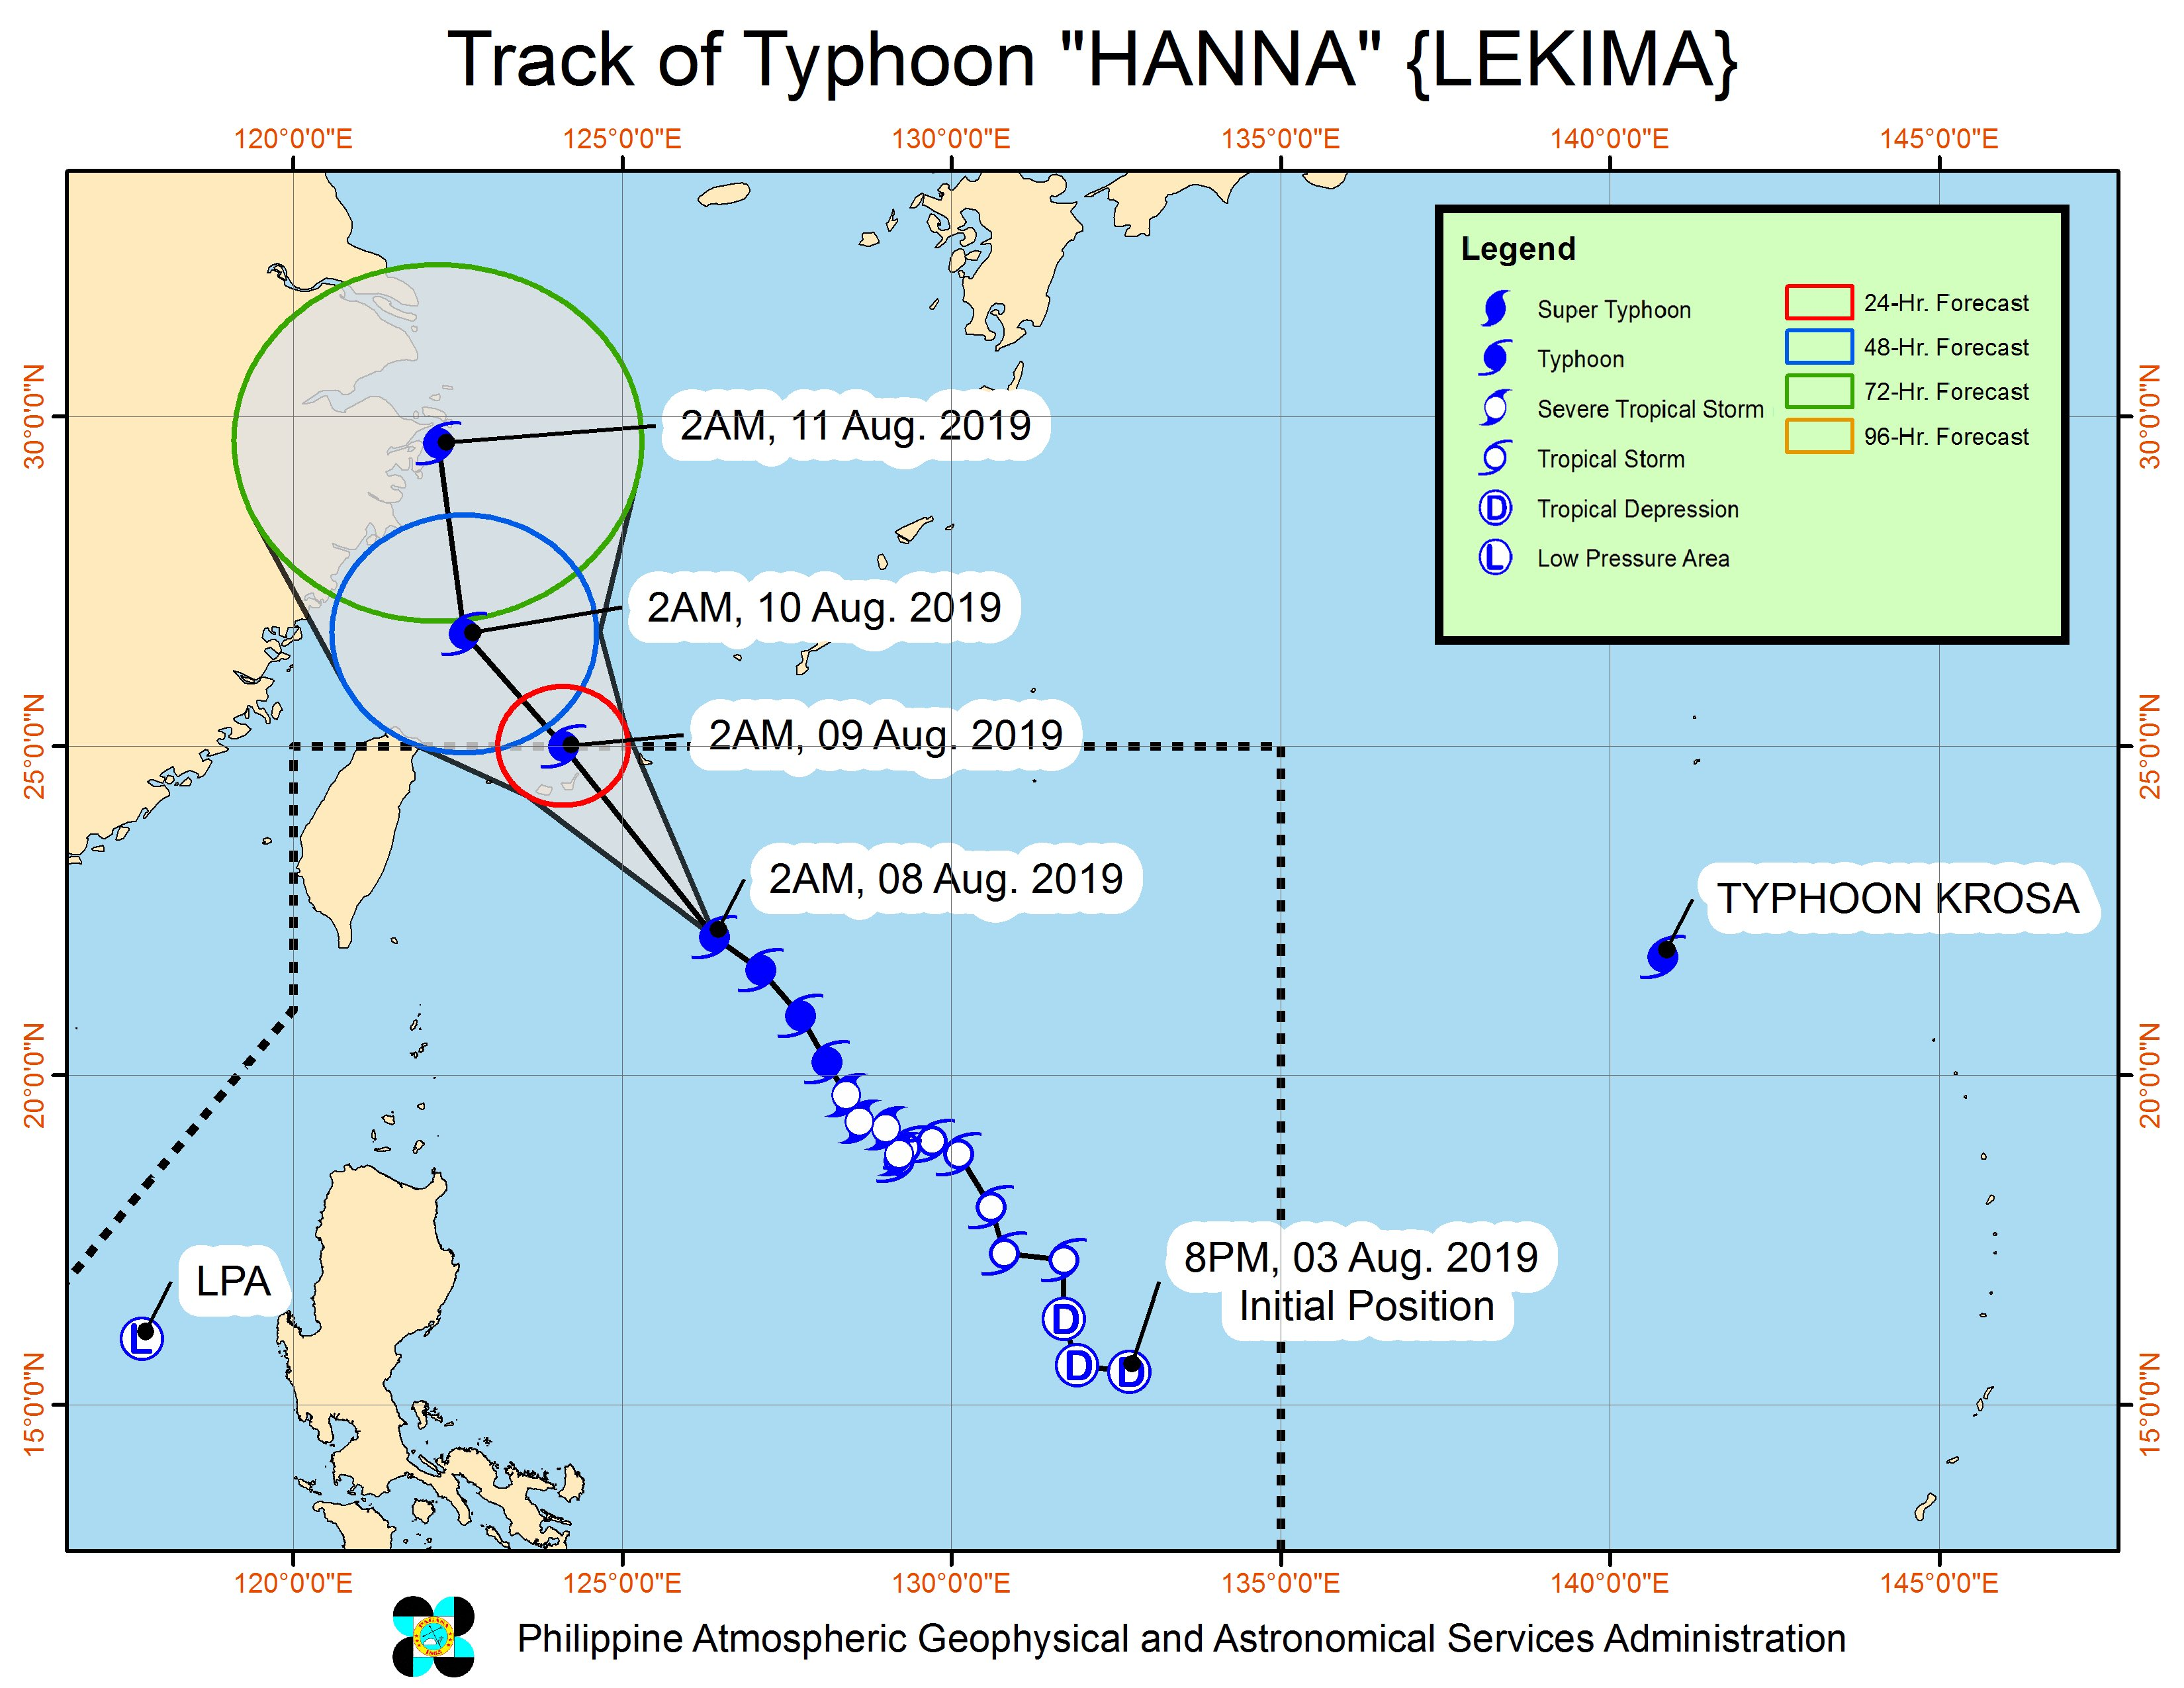 Forecast track of Typhoon Hanna (Lekima) as of August 8, 2019, 5 am. Image from PAGASA